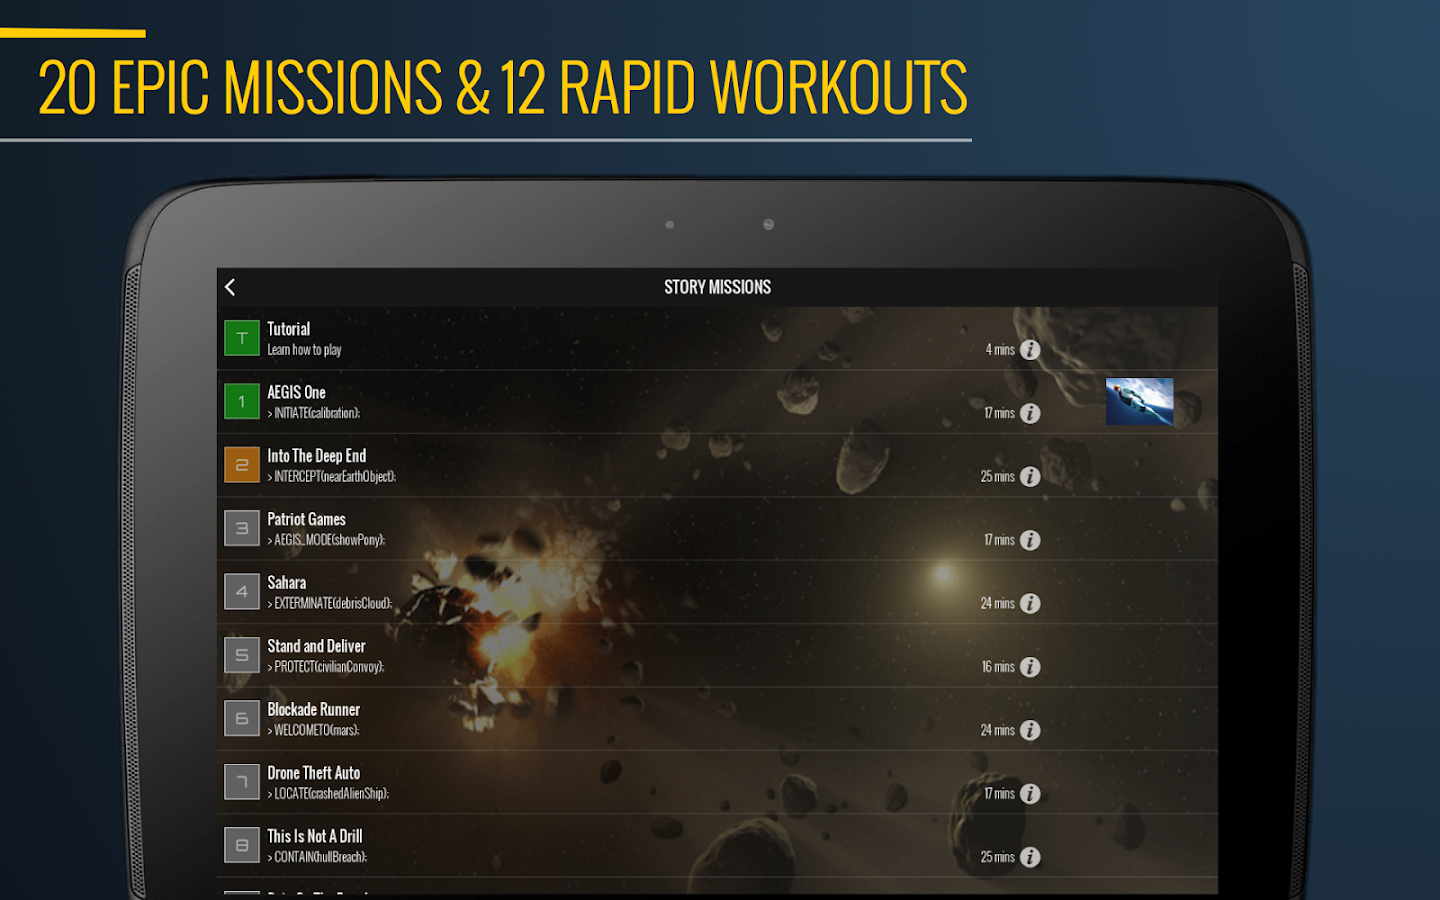 7 Minute Superhero Workout Screenshot 7